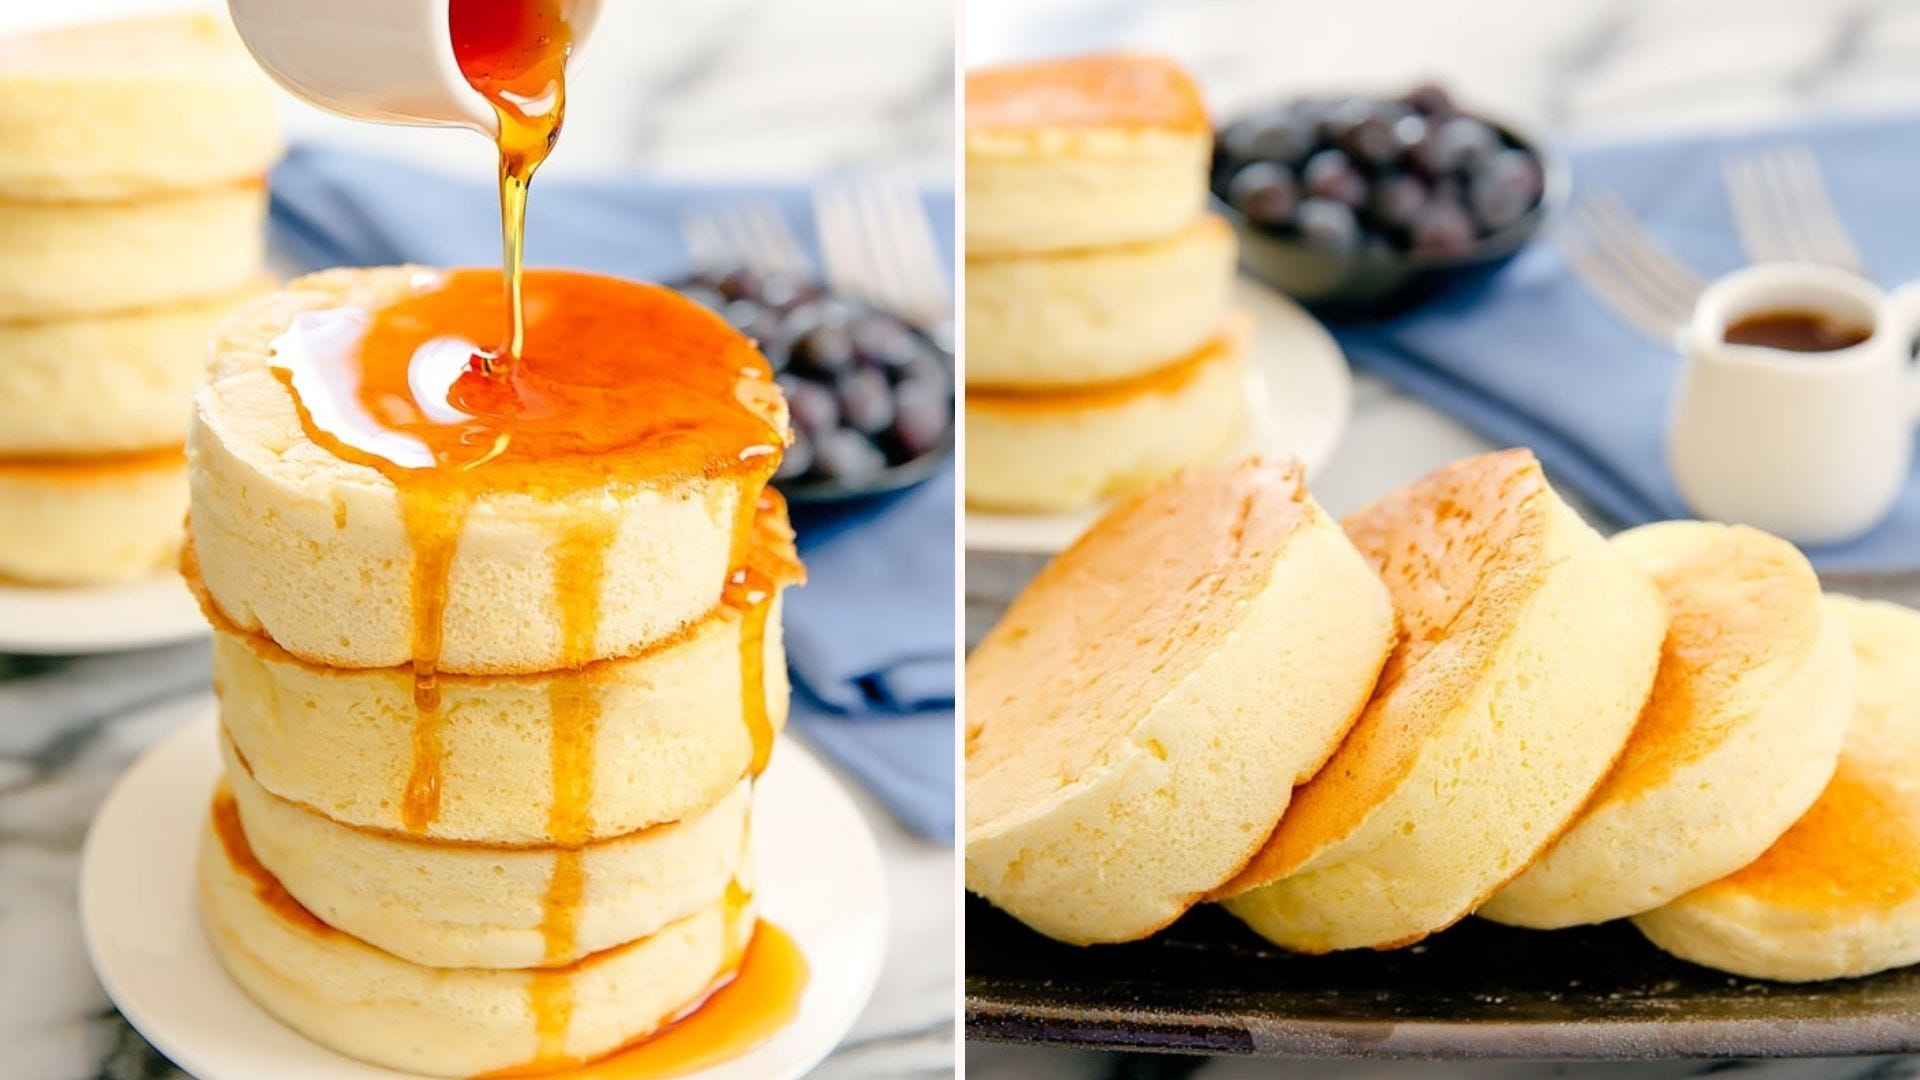 Syrup being drizzled on a stack of Japanese Soufflé Pancakes and four of them next to some berries and a pitcher of syrup.